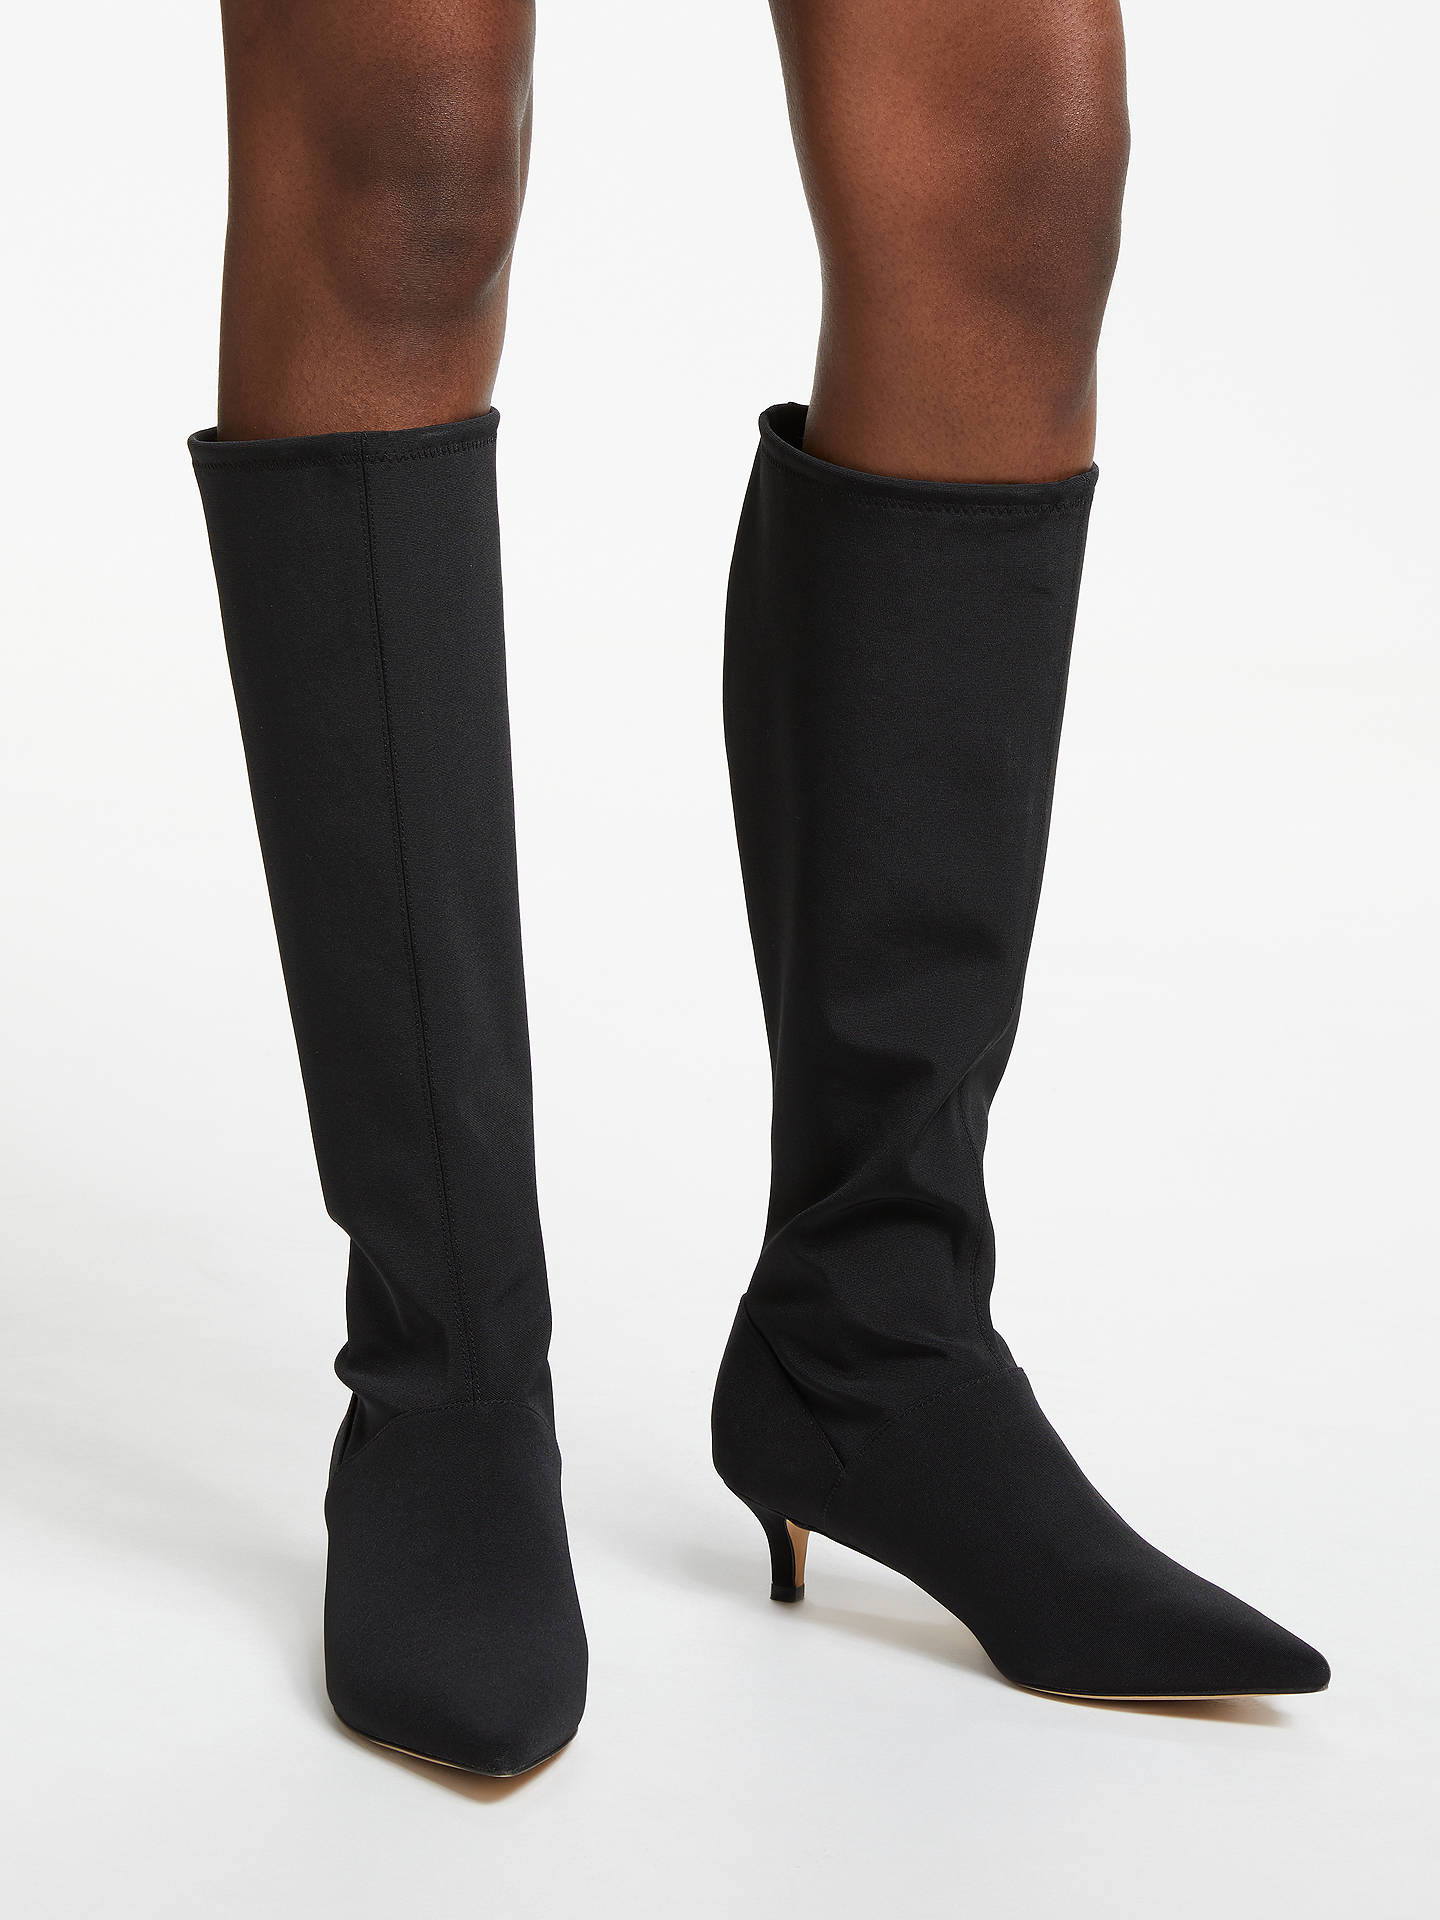 BuyBoden Kitten Heel Stretch Knee Boots, Black, 6 Online at johnlewis.com